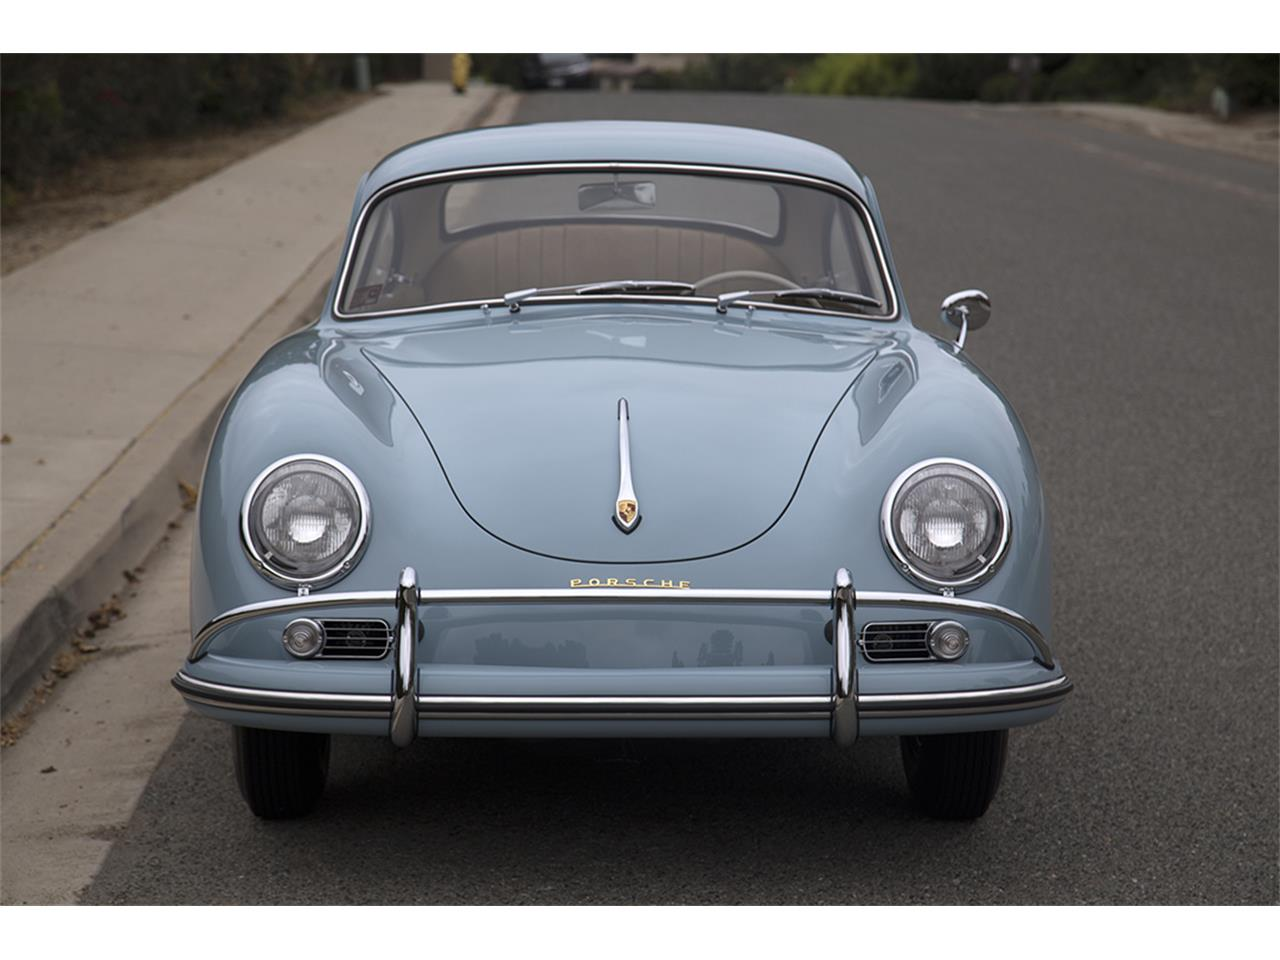 1959 Porsche 356A for sale in La Jolla, CA – photo 6